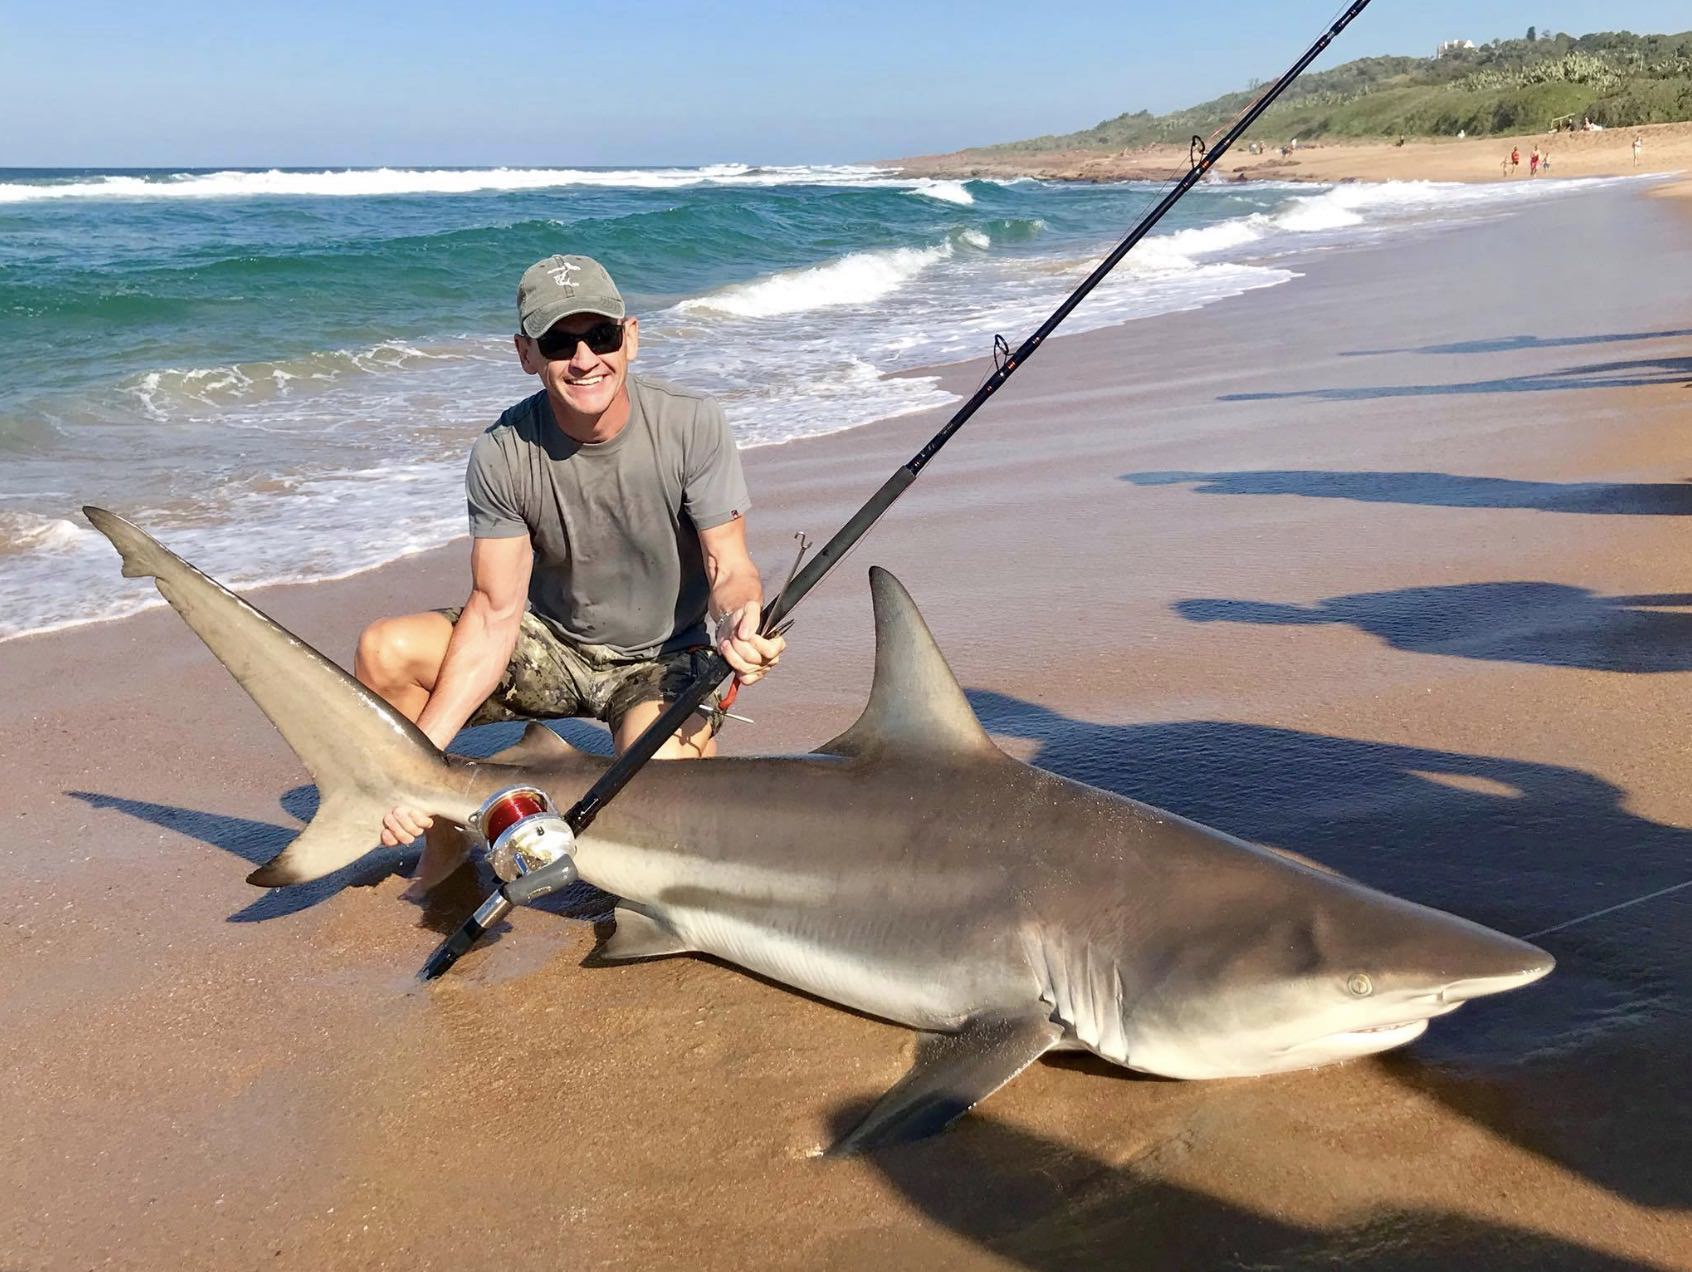 Drone fishermen are catching massive sharks by getting the bait as far as 1,000 feet away from the beach